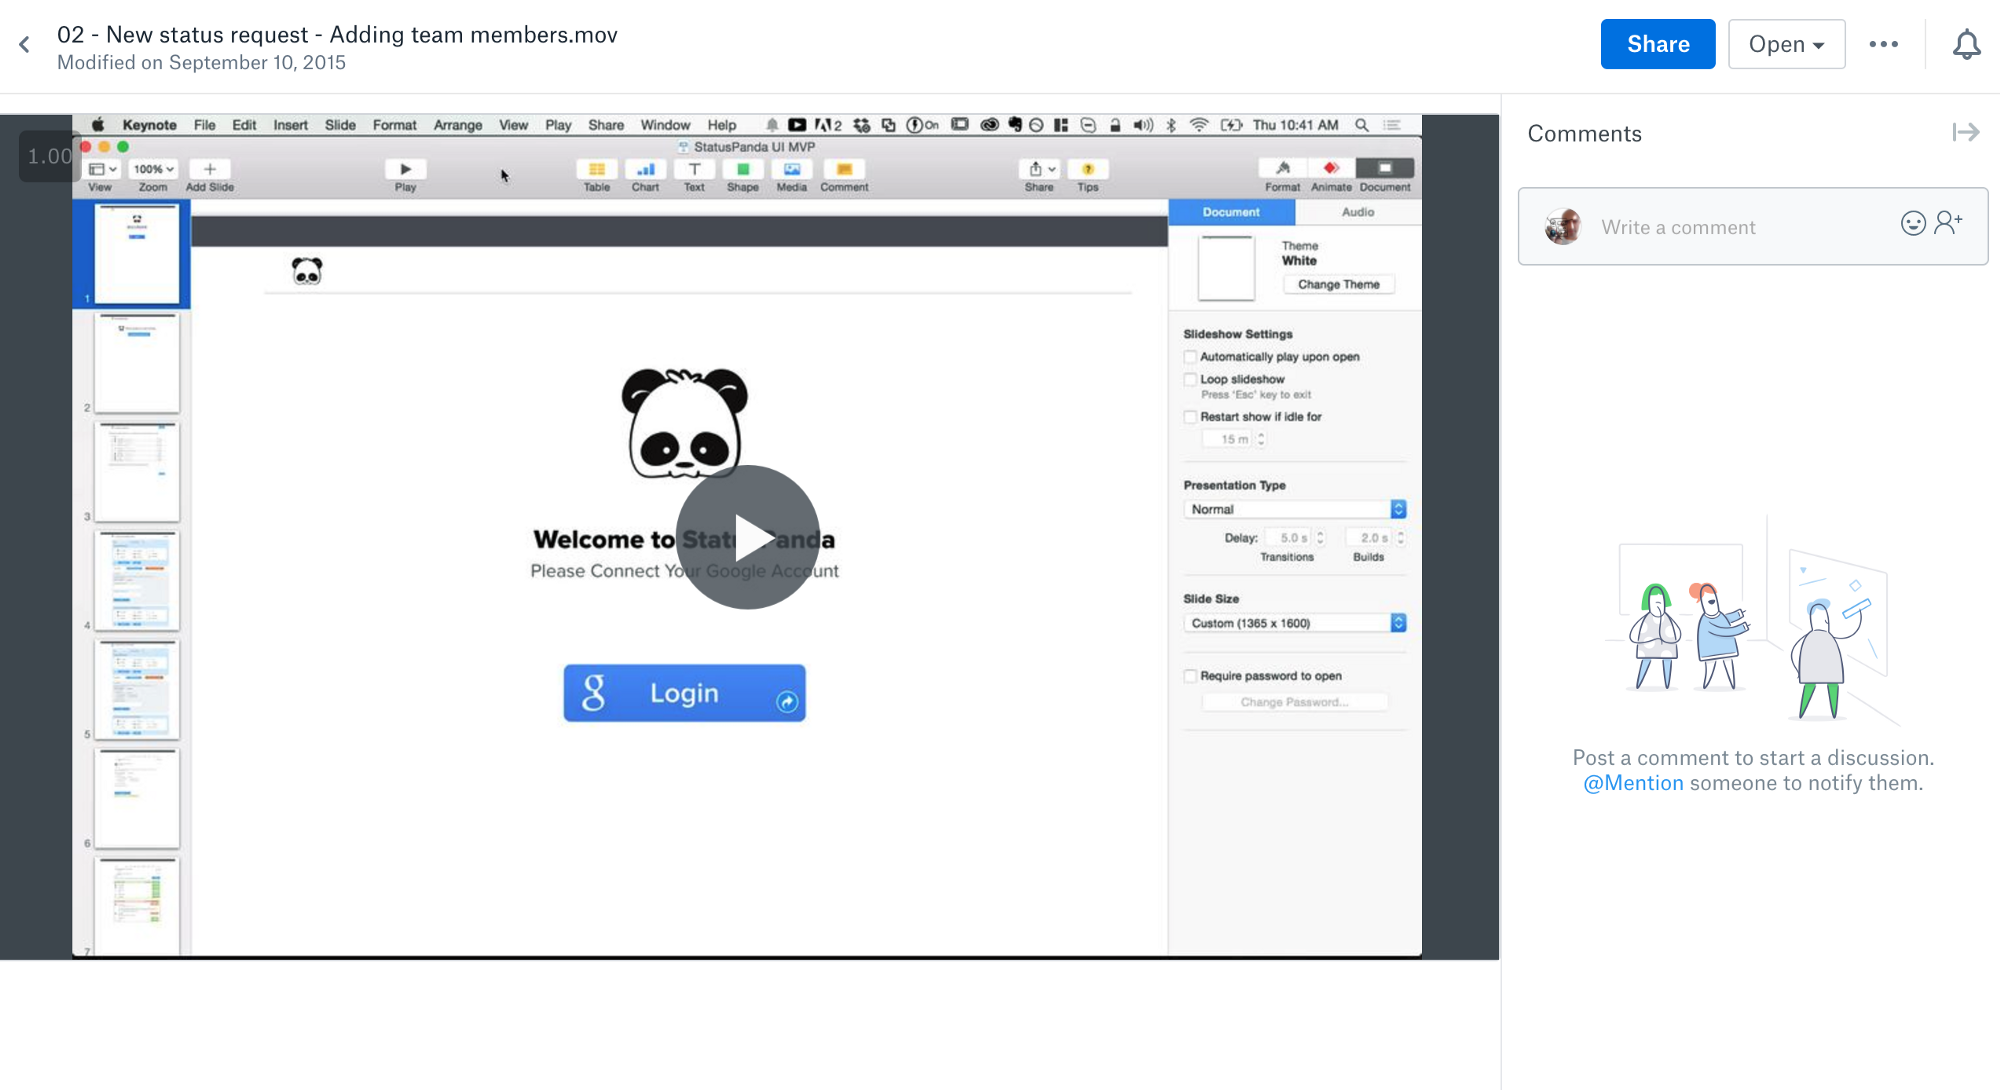 How to create product requirements in one hour or less sample video requirement for statuspanda status reporting app maxwellsz